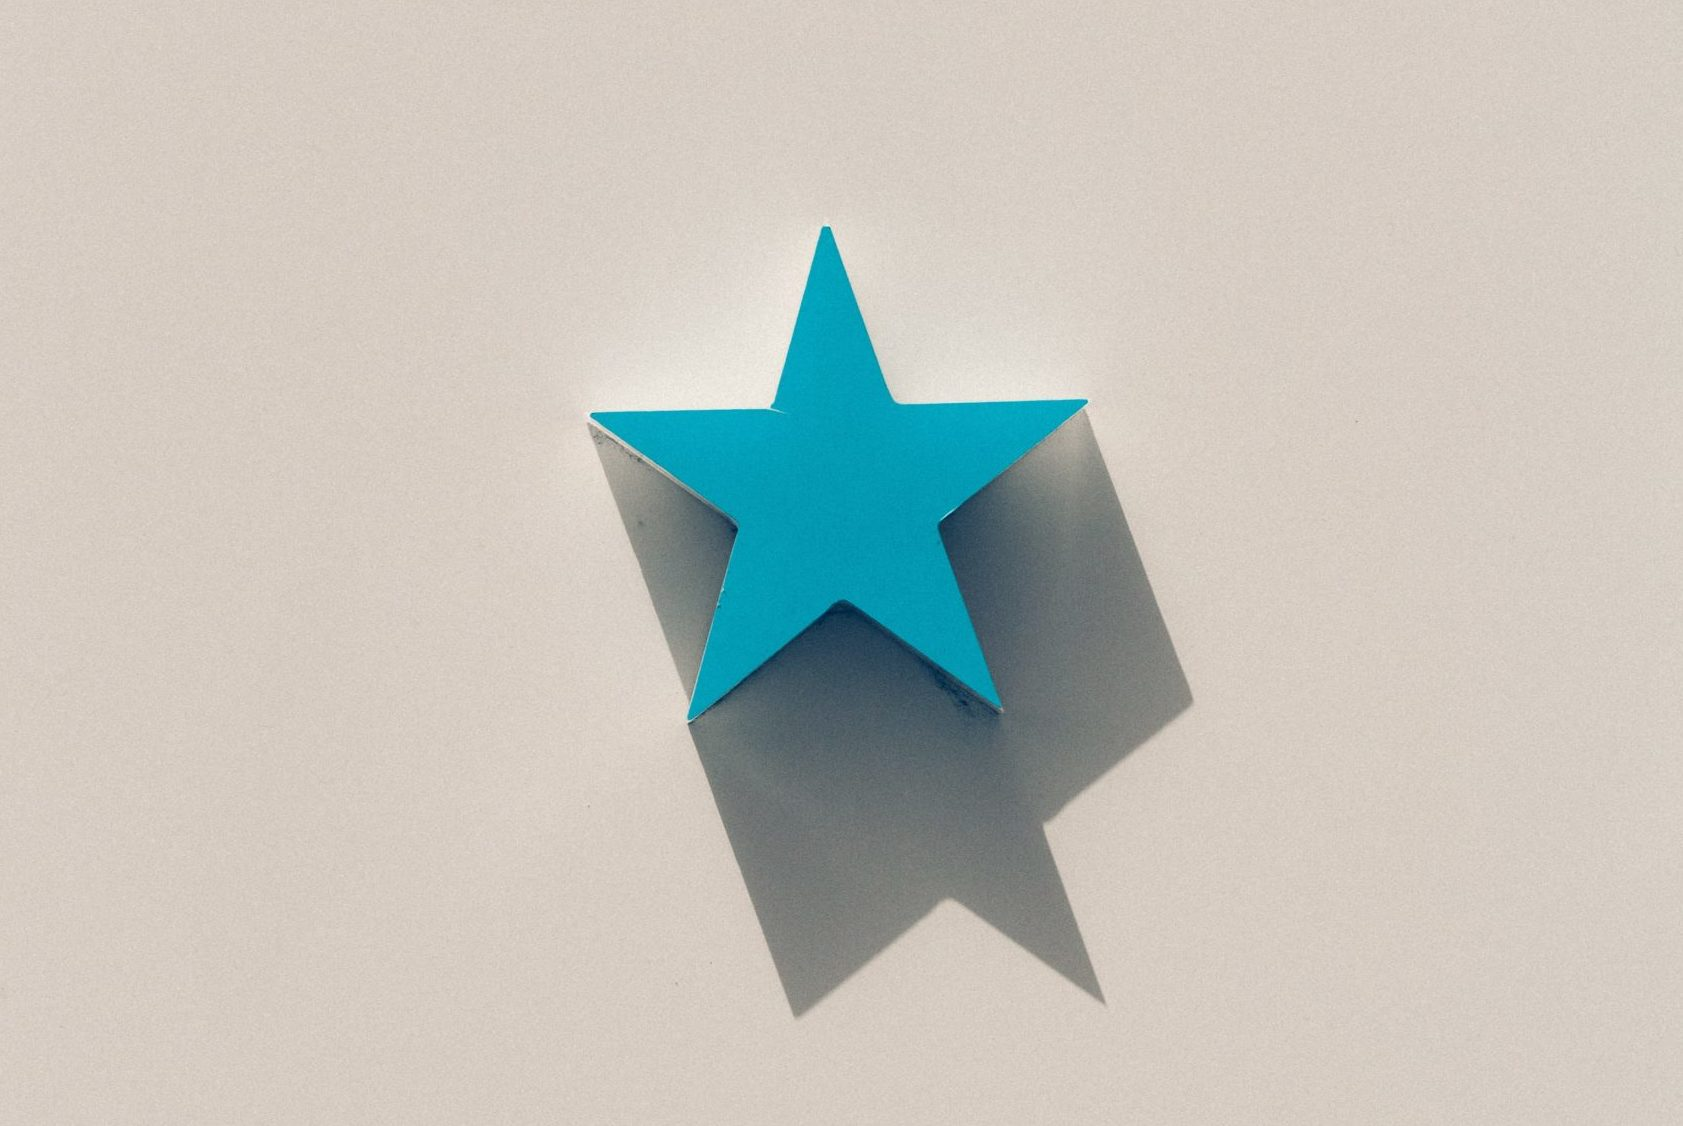 What's in a star?